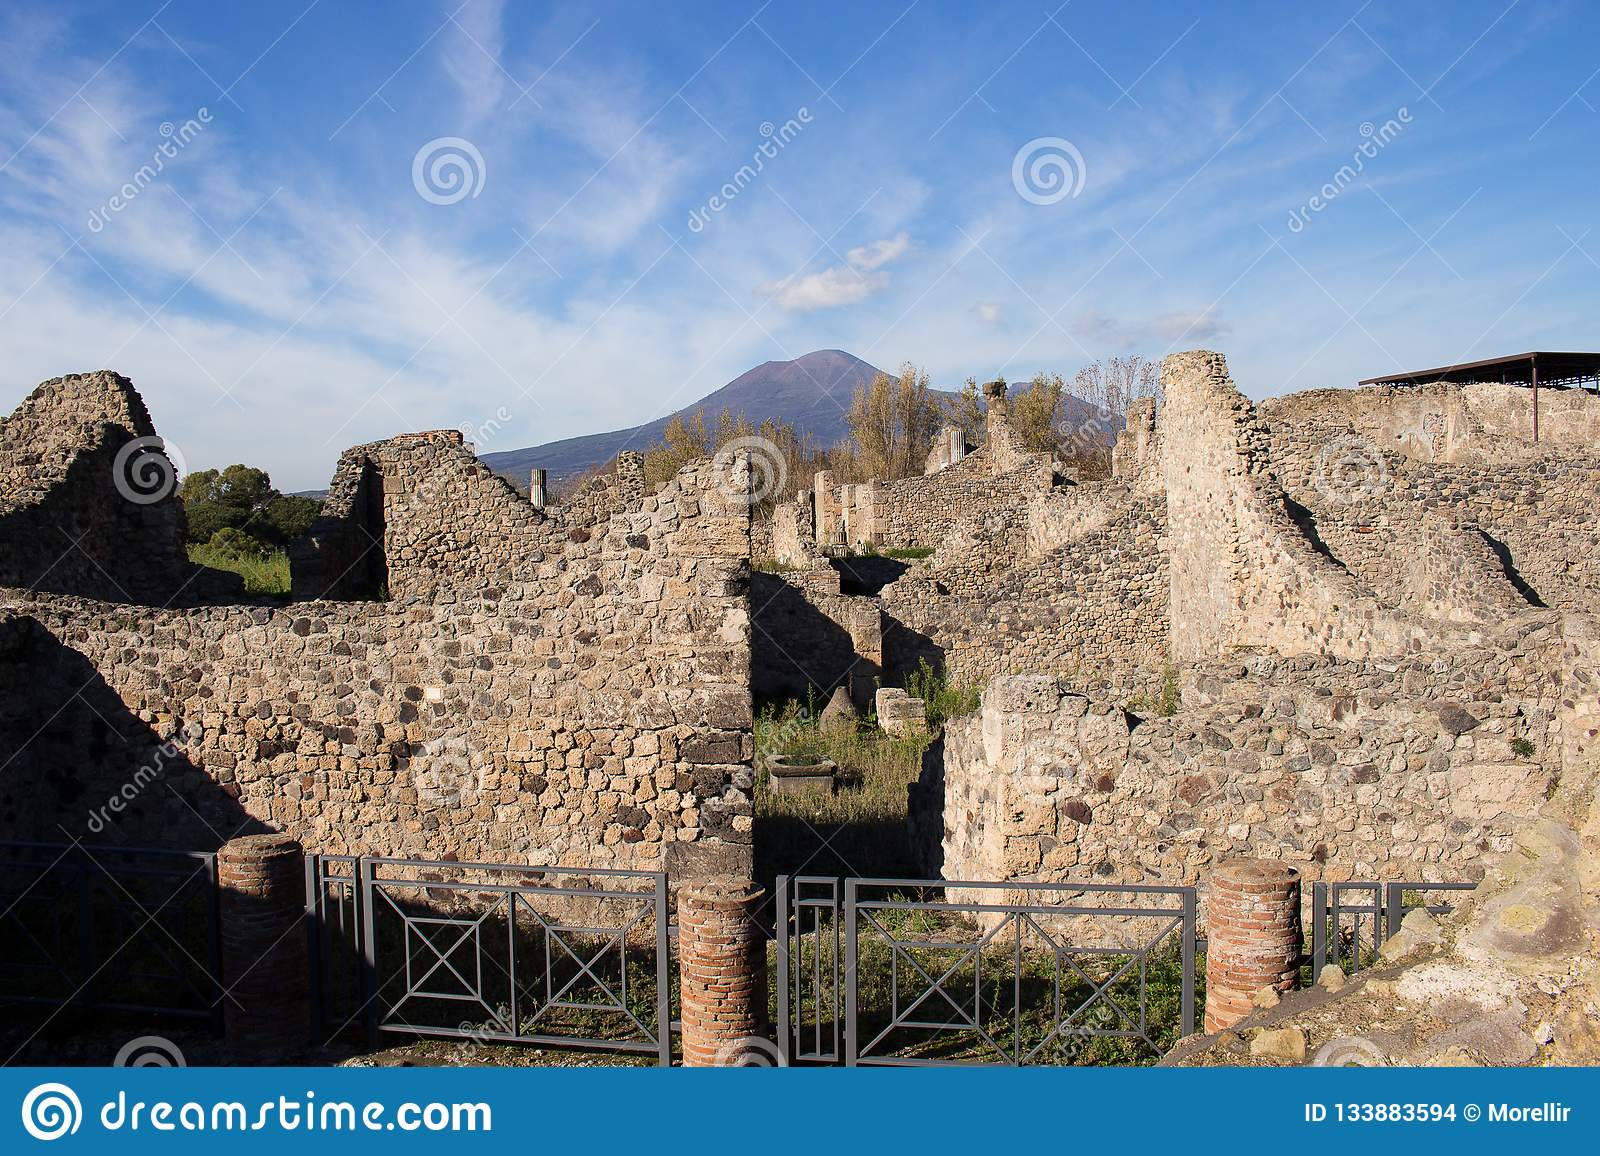 Pompeii Is An Ancient City Buried In 79 AD From The Eruption Of Vesuvius